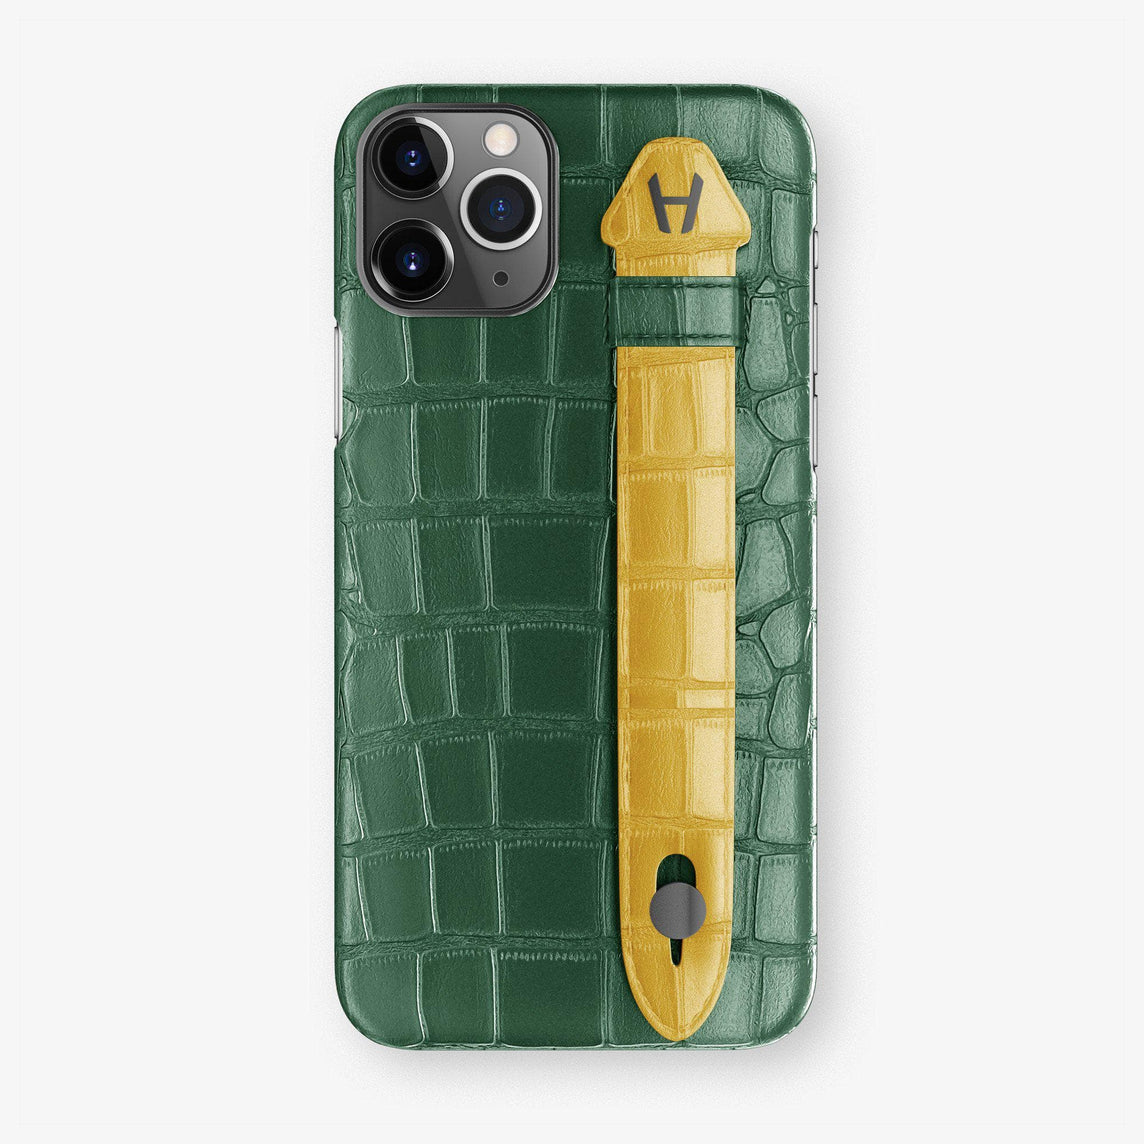 Alligator Finger Case iPhone 11 Pro | Green/Yellow - Black